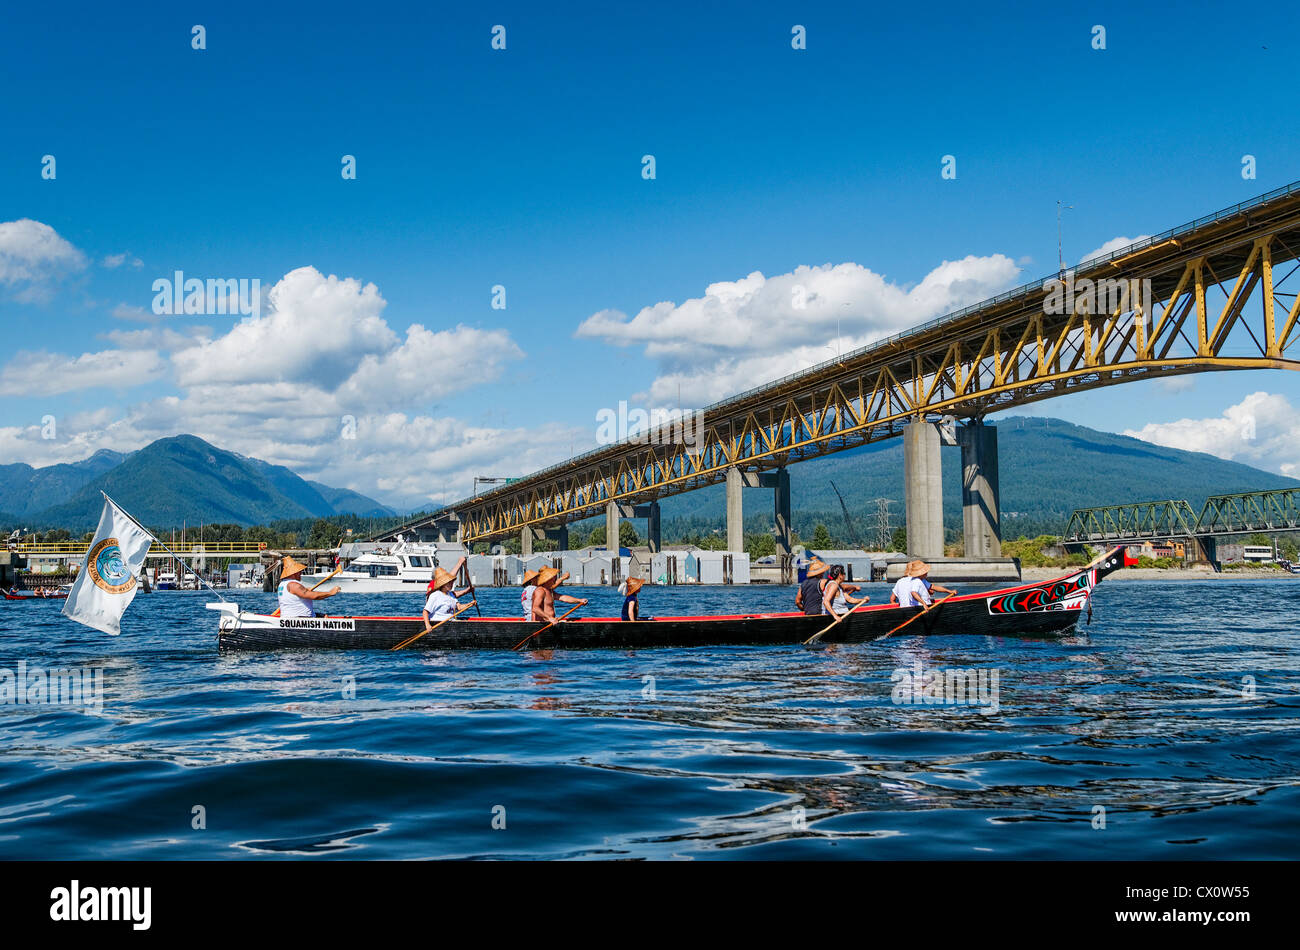 Squamish First Nations canoe approaches Iron Workers Memorial Bridge, Burrard Inlet, Vancouver. - Stock Image